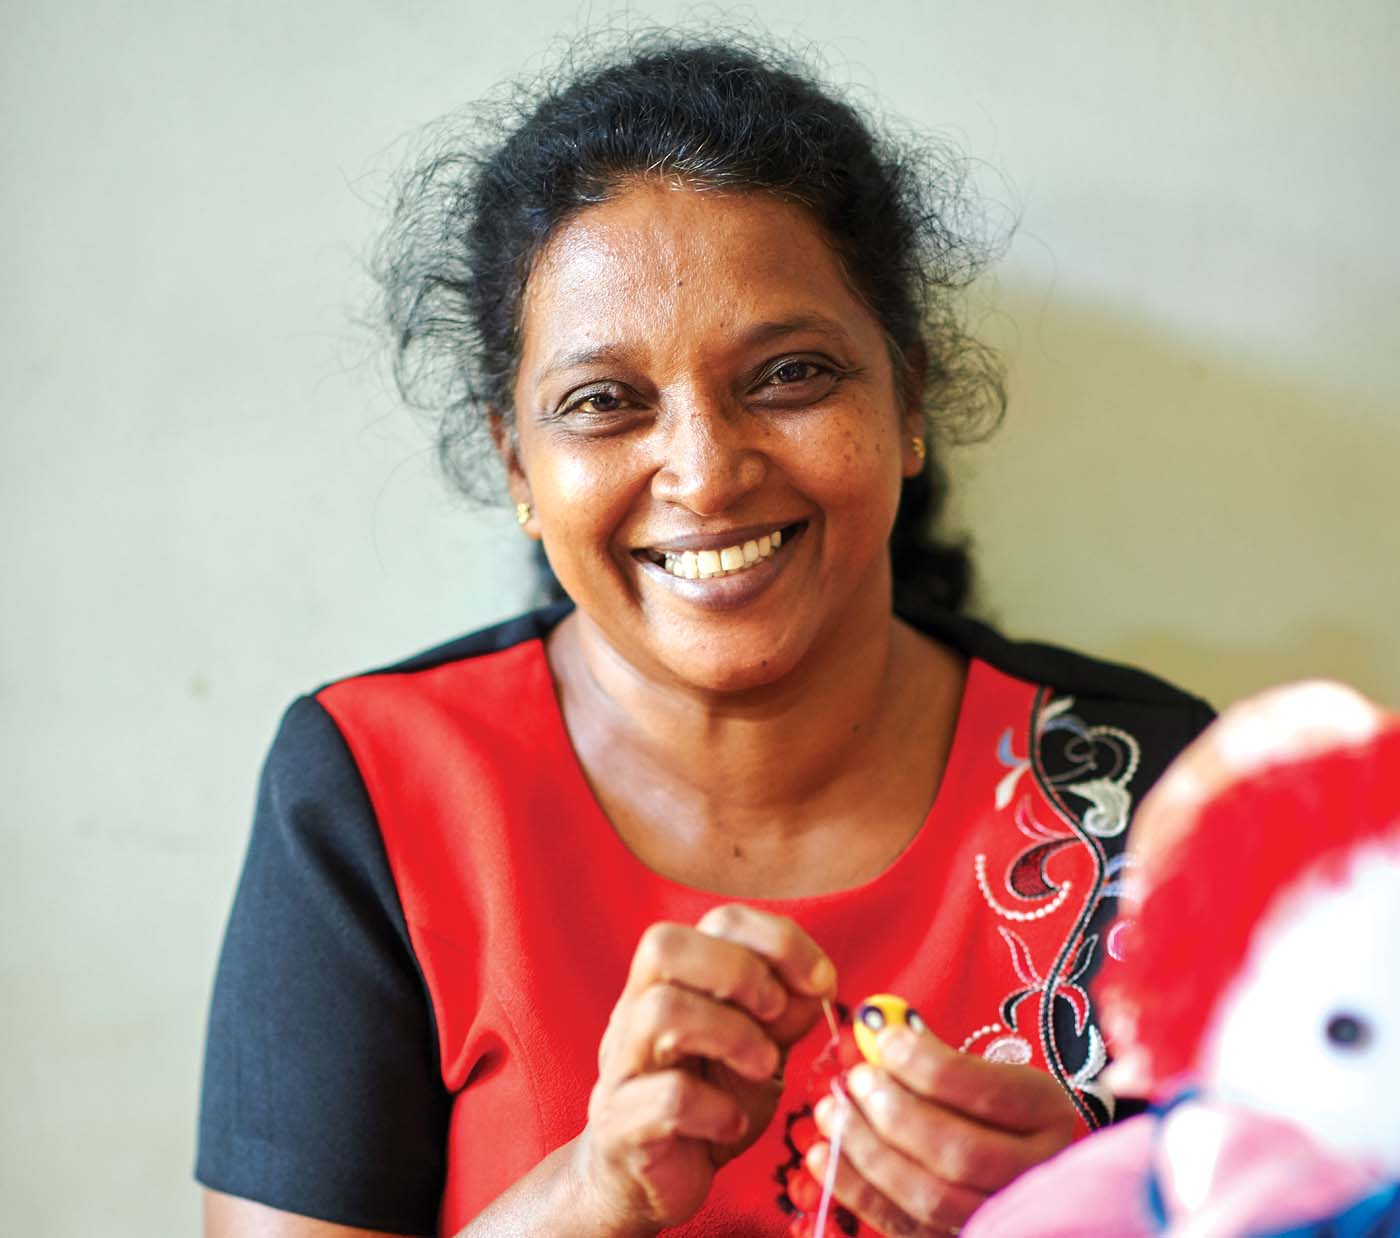 Our Women's Development Programme at the MJF Centre in Moratuwa trains disadvantaged women in sewing, cooking and gardening not only as a skill development but also as an activity that allows them to escape the trials of their day to day lives.